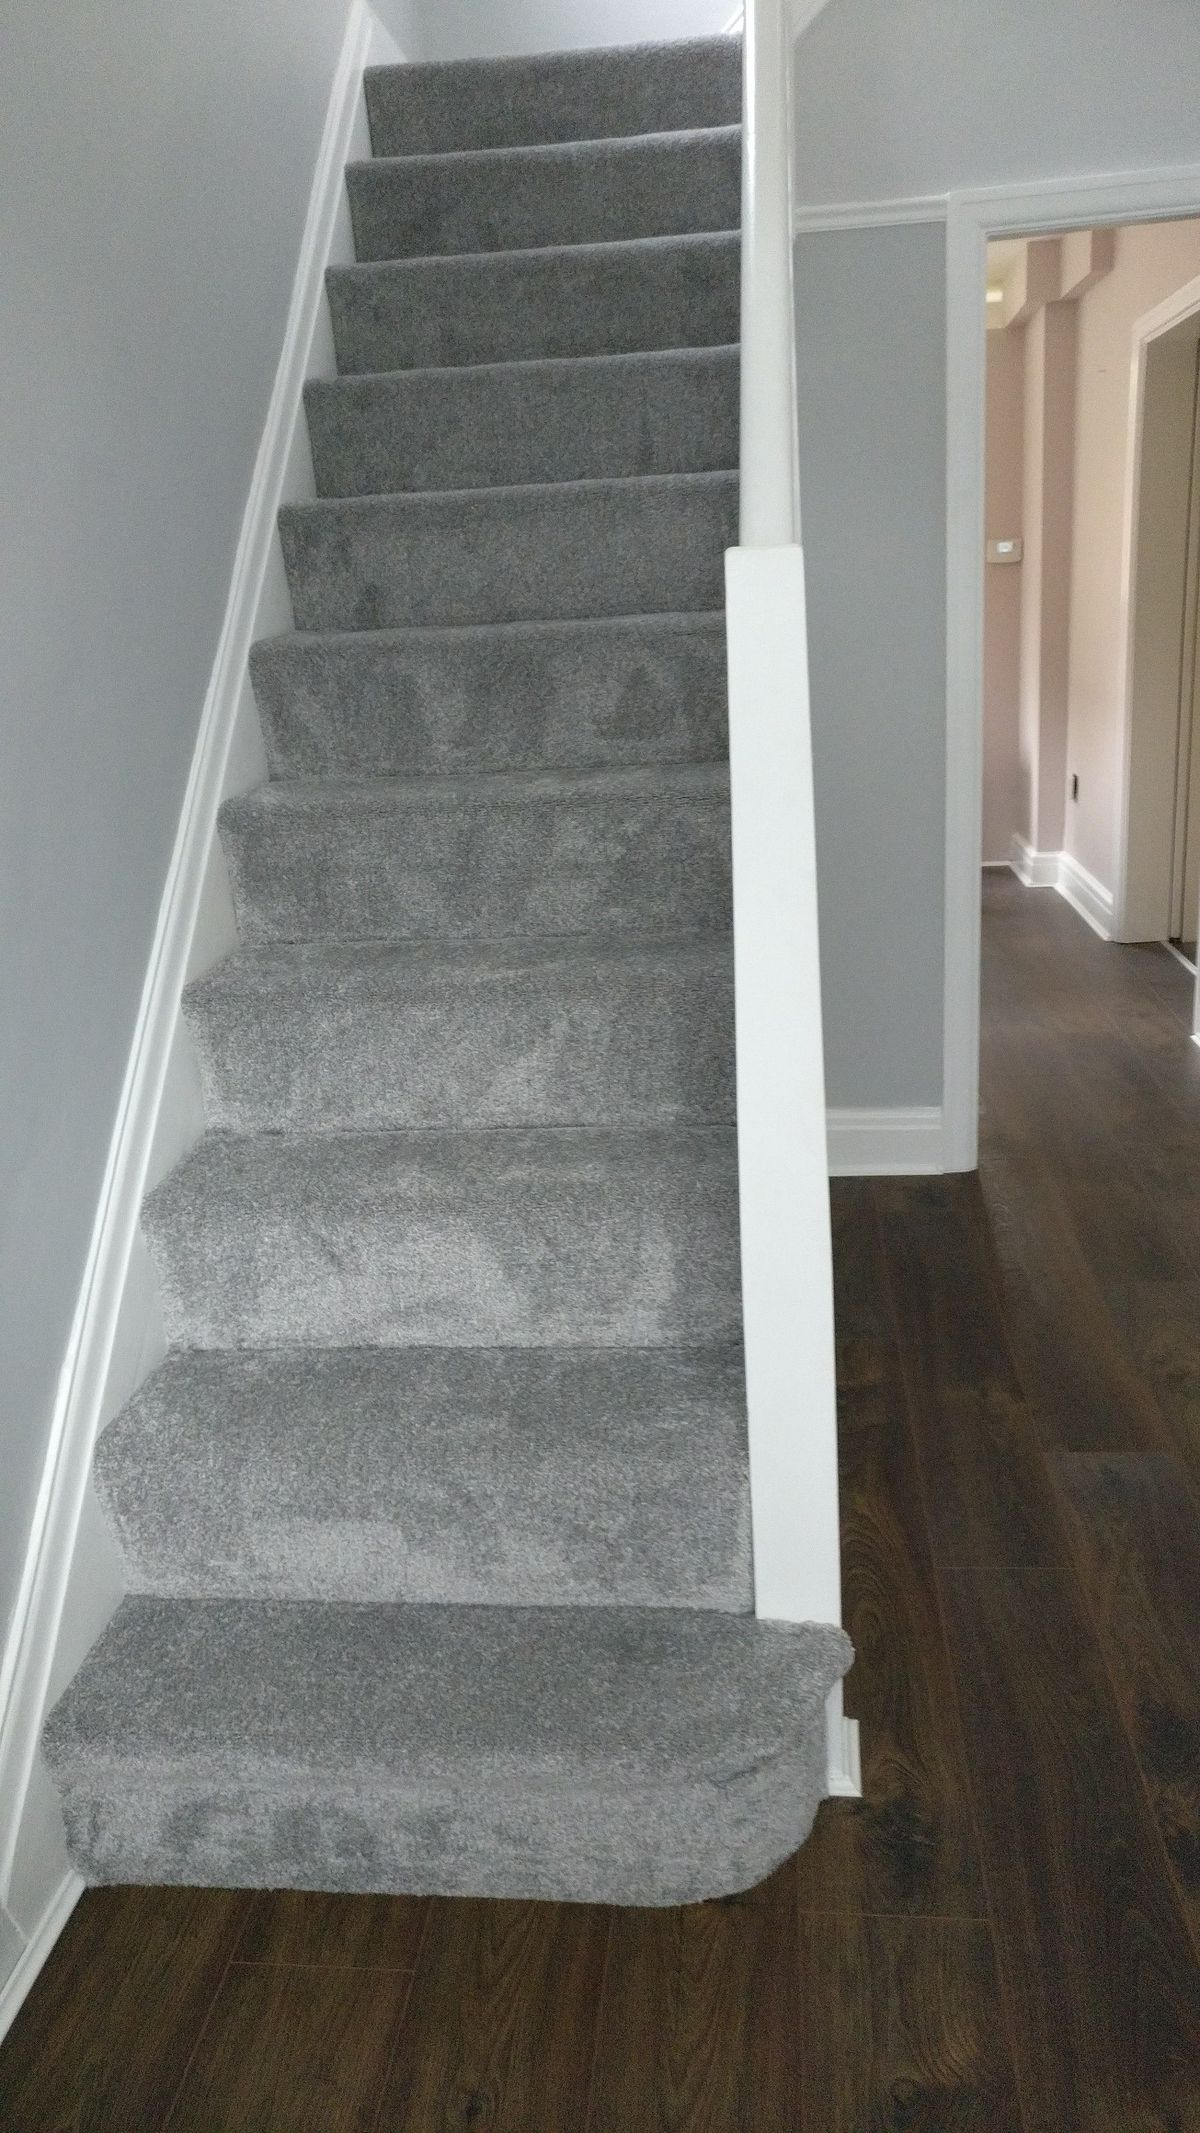 Good Screen Grey Carpet Stairs Style Choosing The Right Carpet Colour Can Be A Daunting Process Unlike Fashion Tr In 2021 Grey Stair Carpet Carpet Stairs Grey Hallway